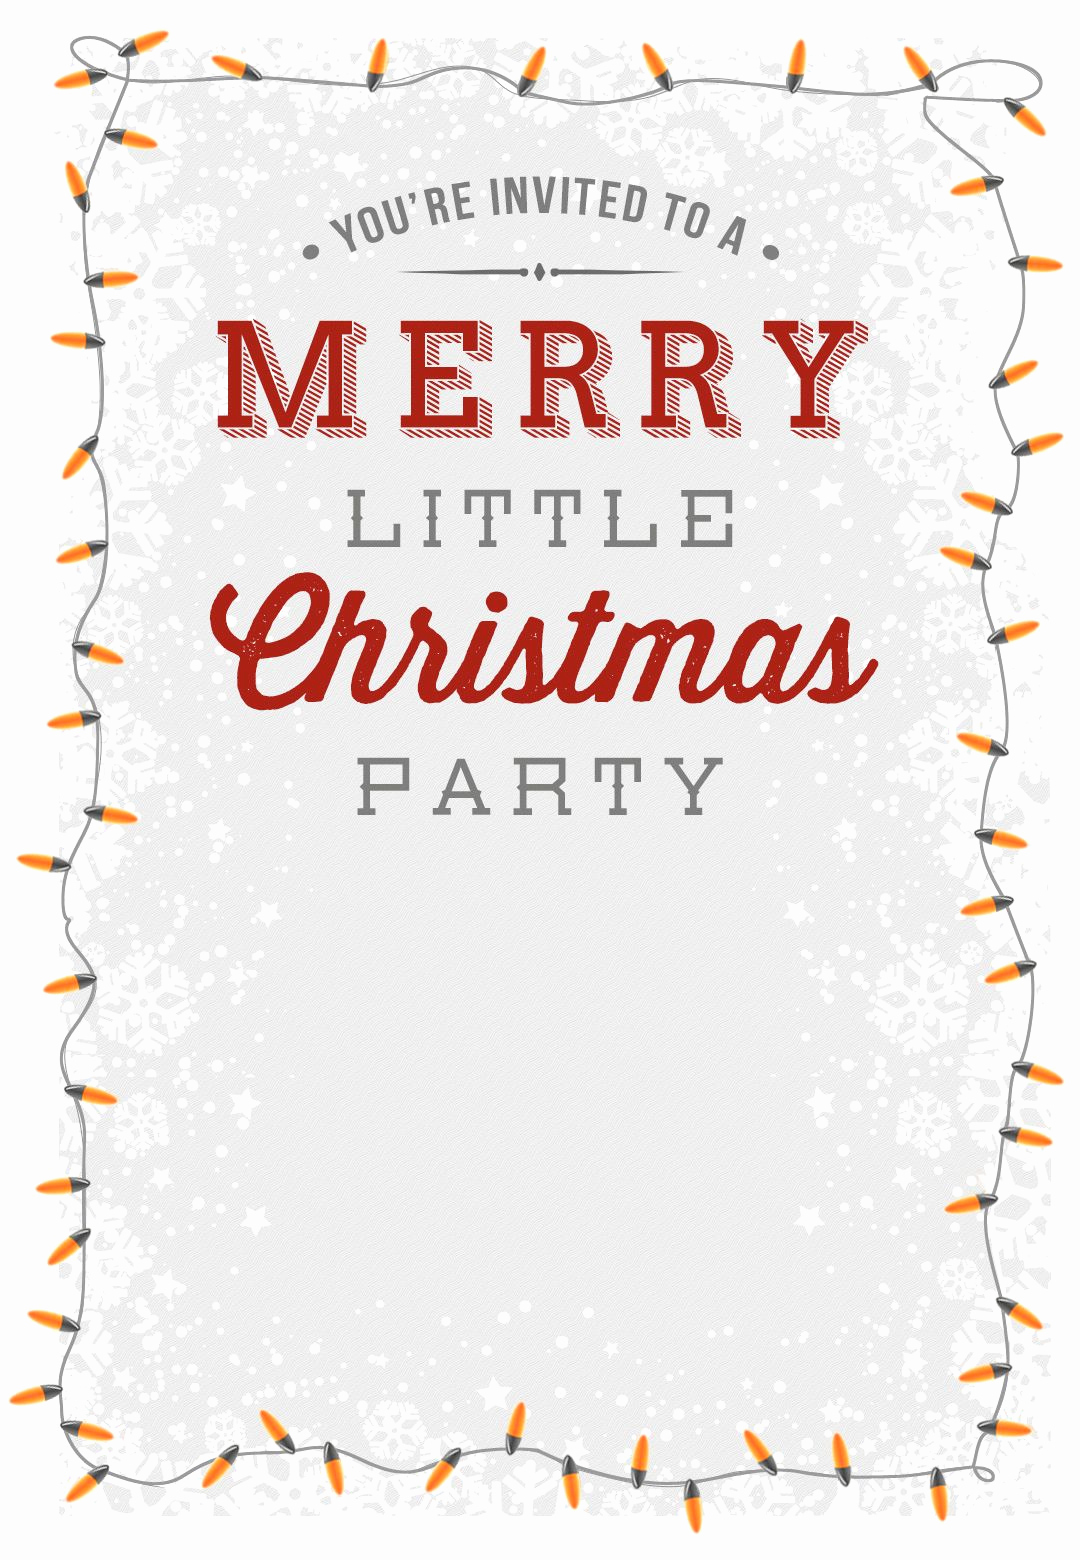 Holiday Party Invitation Template Elegant A Merry Little Party Free Printable Christmas Invitation